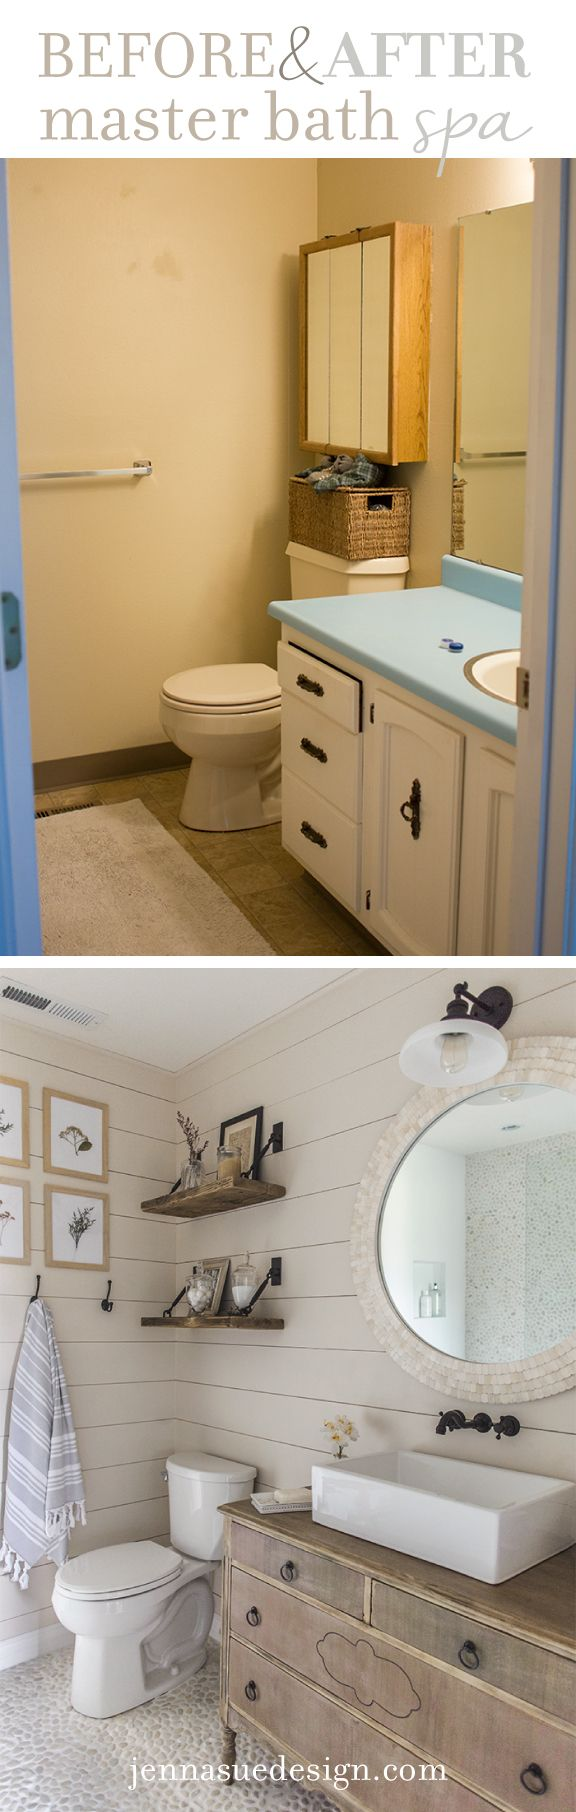 Remodel Bathroom Blog 83 best home: bathrooms images on pinterest | bathroom ideas, room